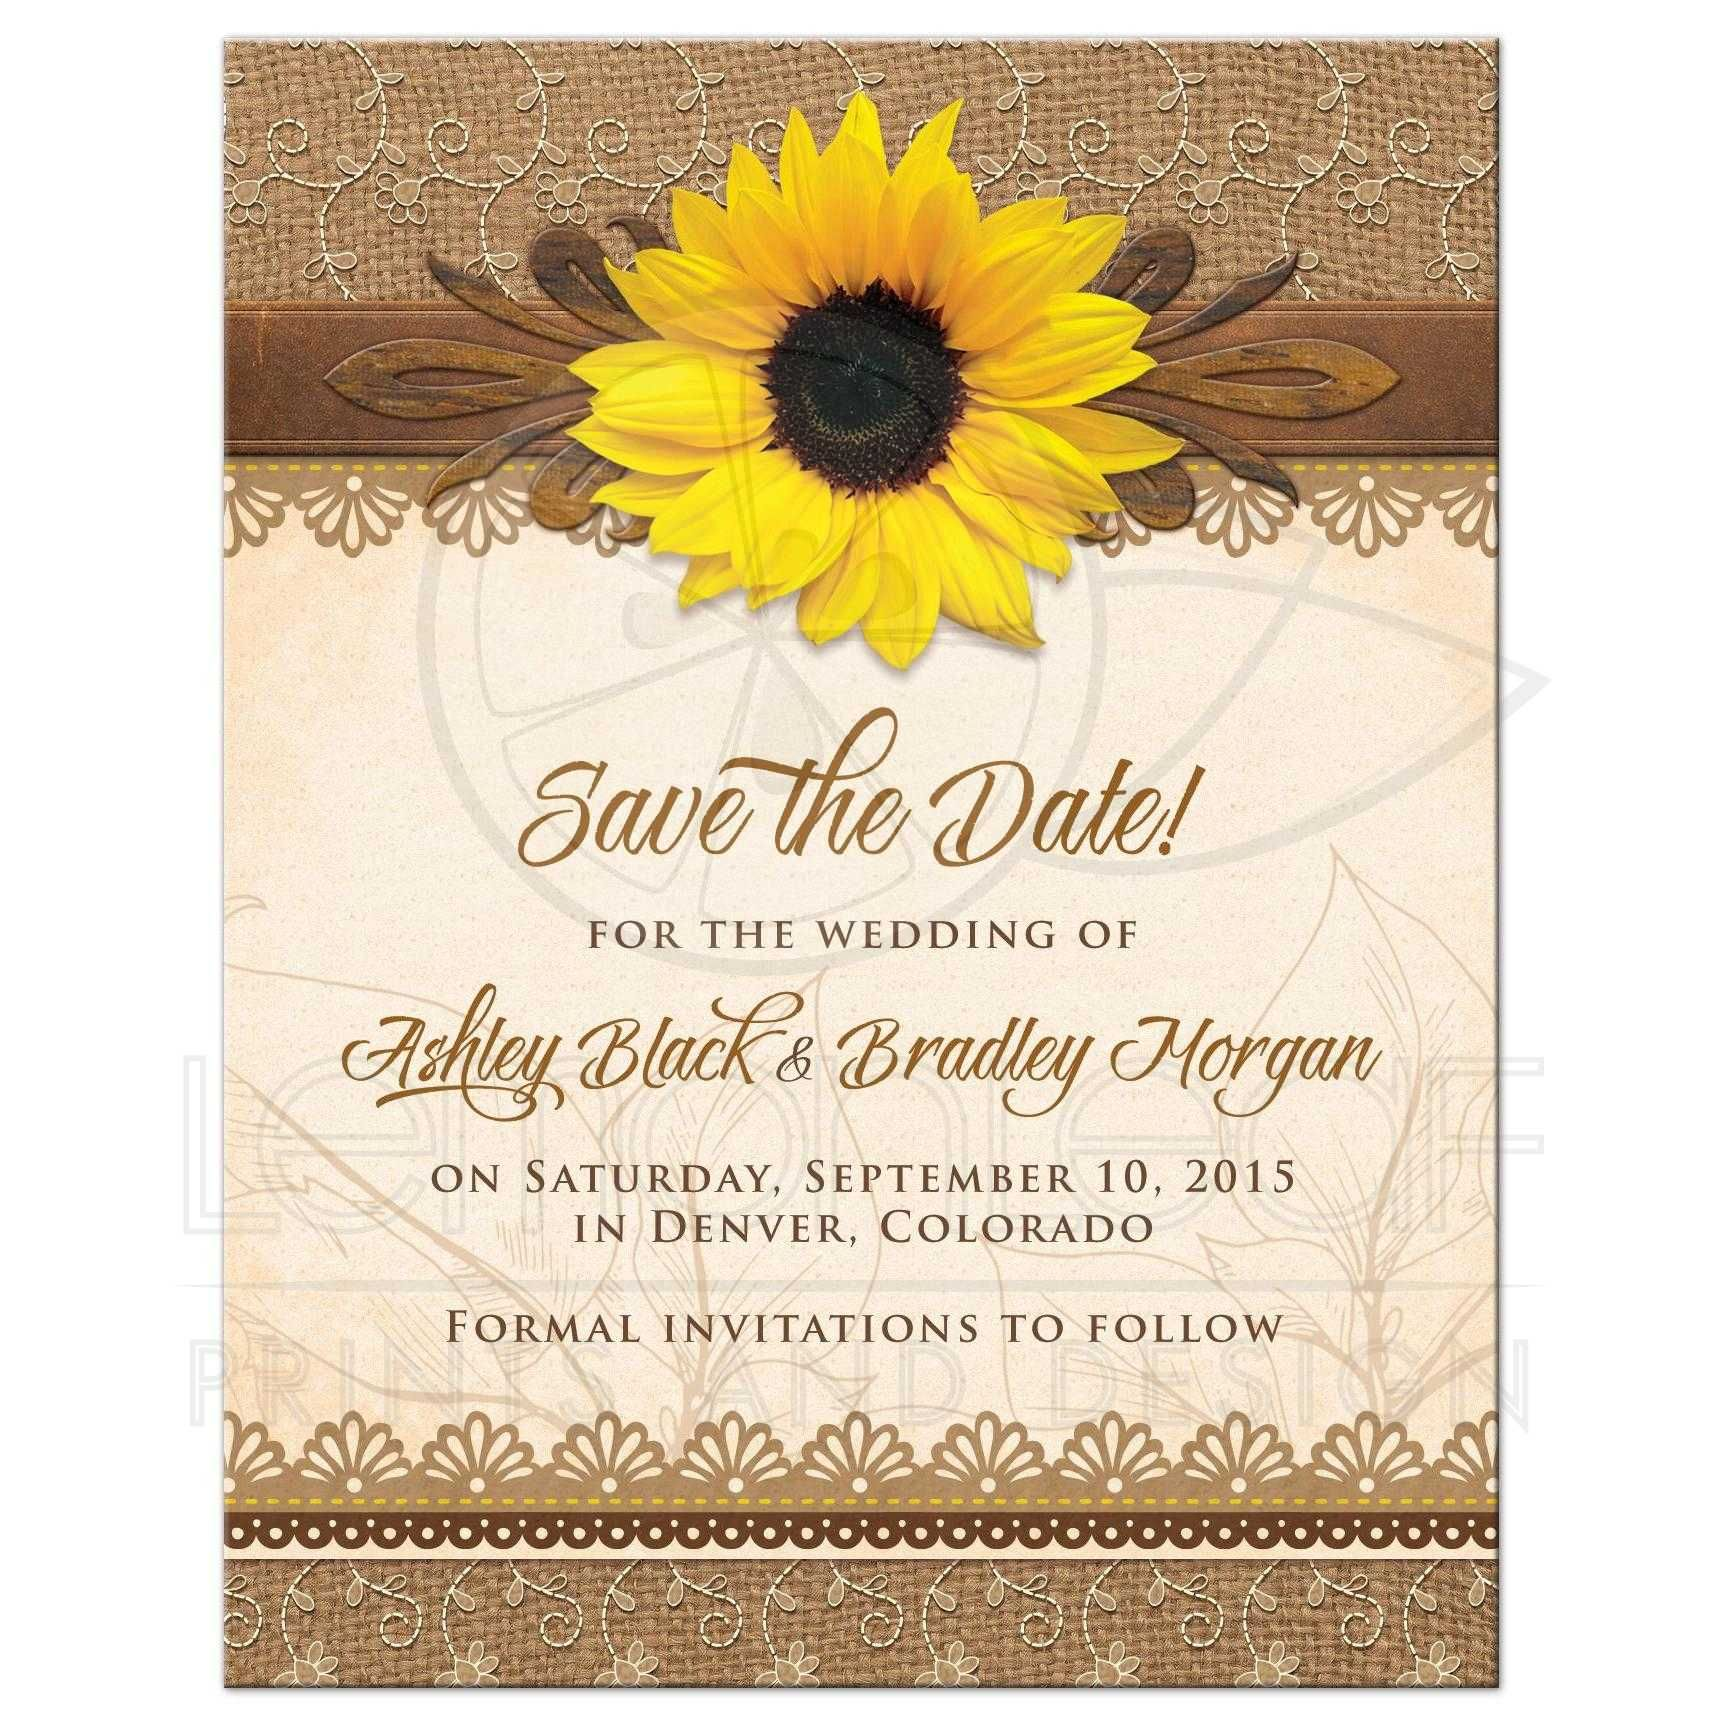 Save the Date Rustic Sunflower Burlap Lace Wood